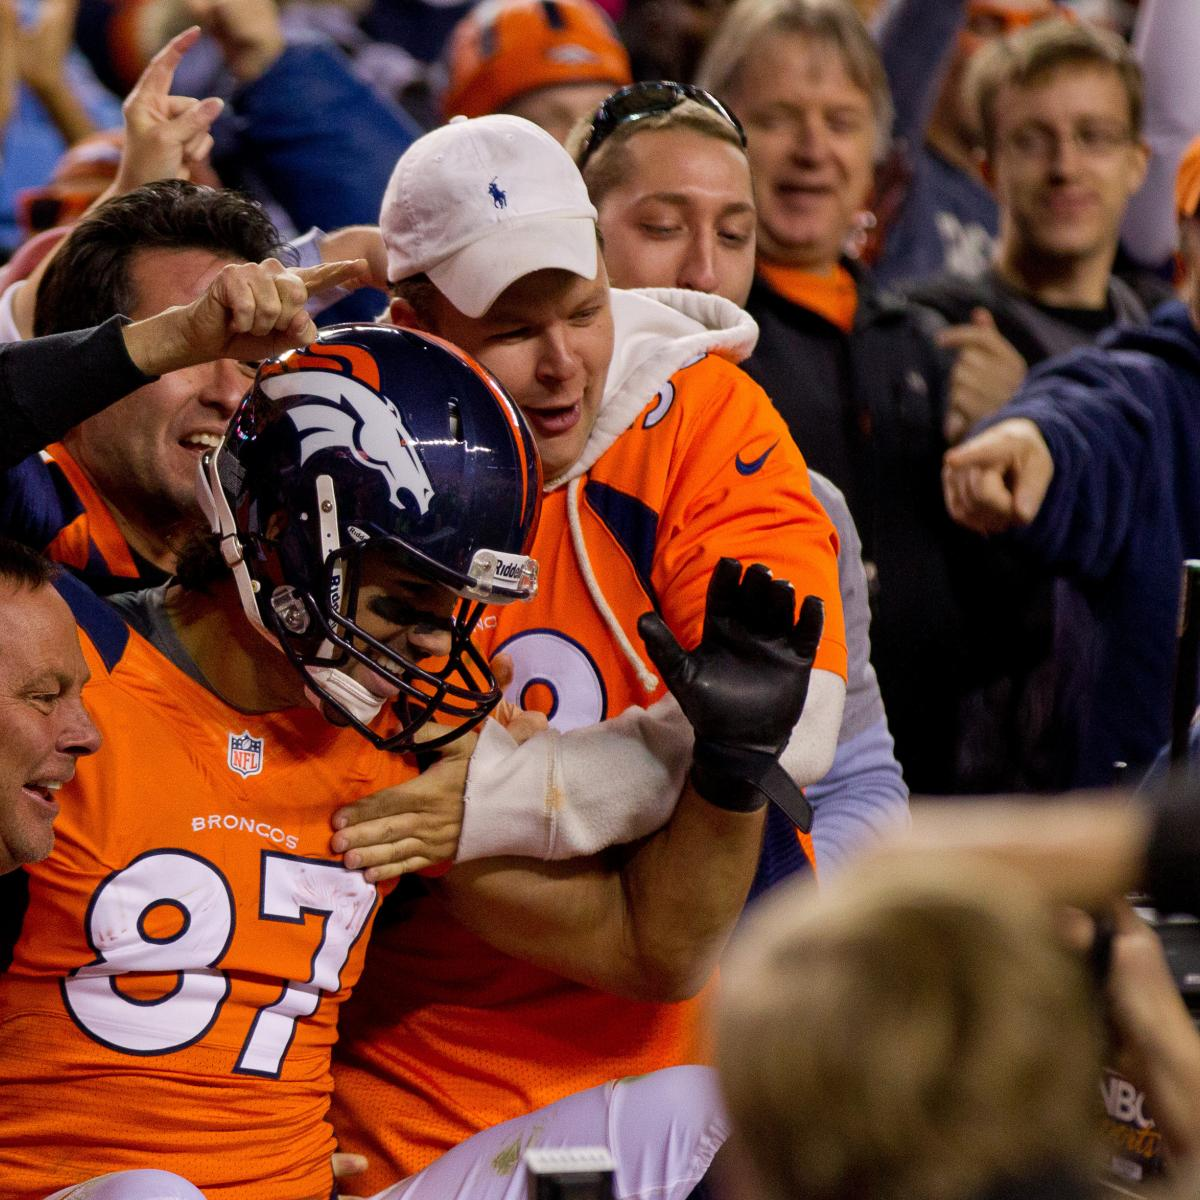 Denver Broncos Prove They Are AFC Contenders With Sunday's